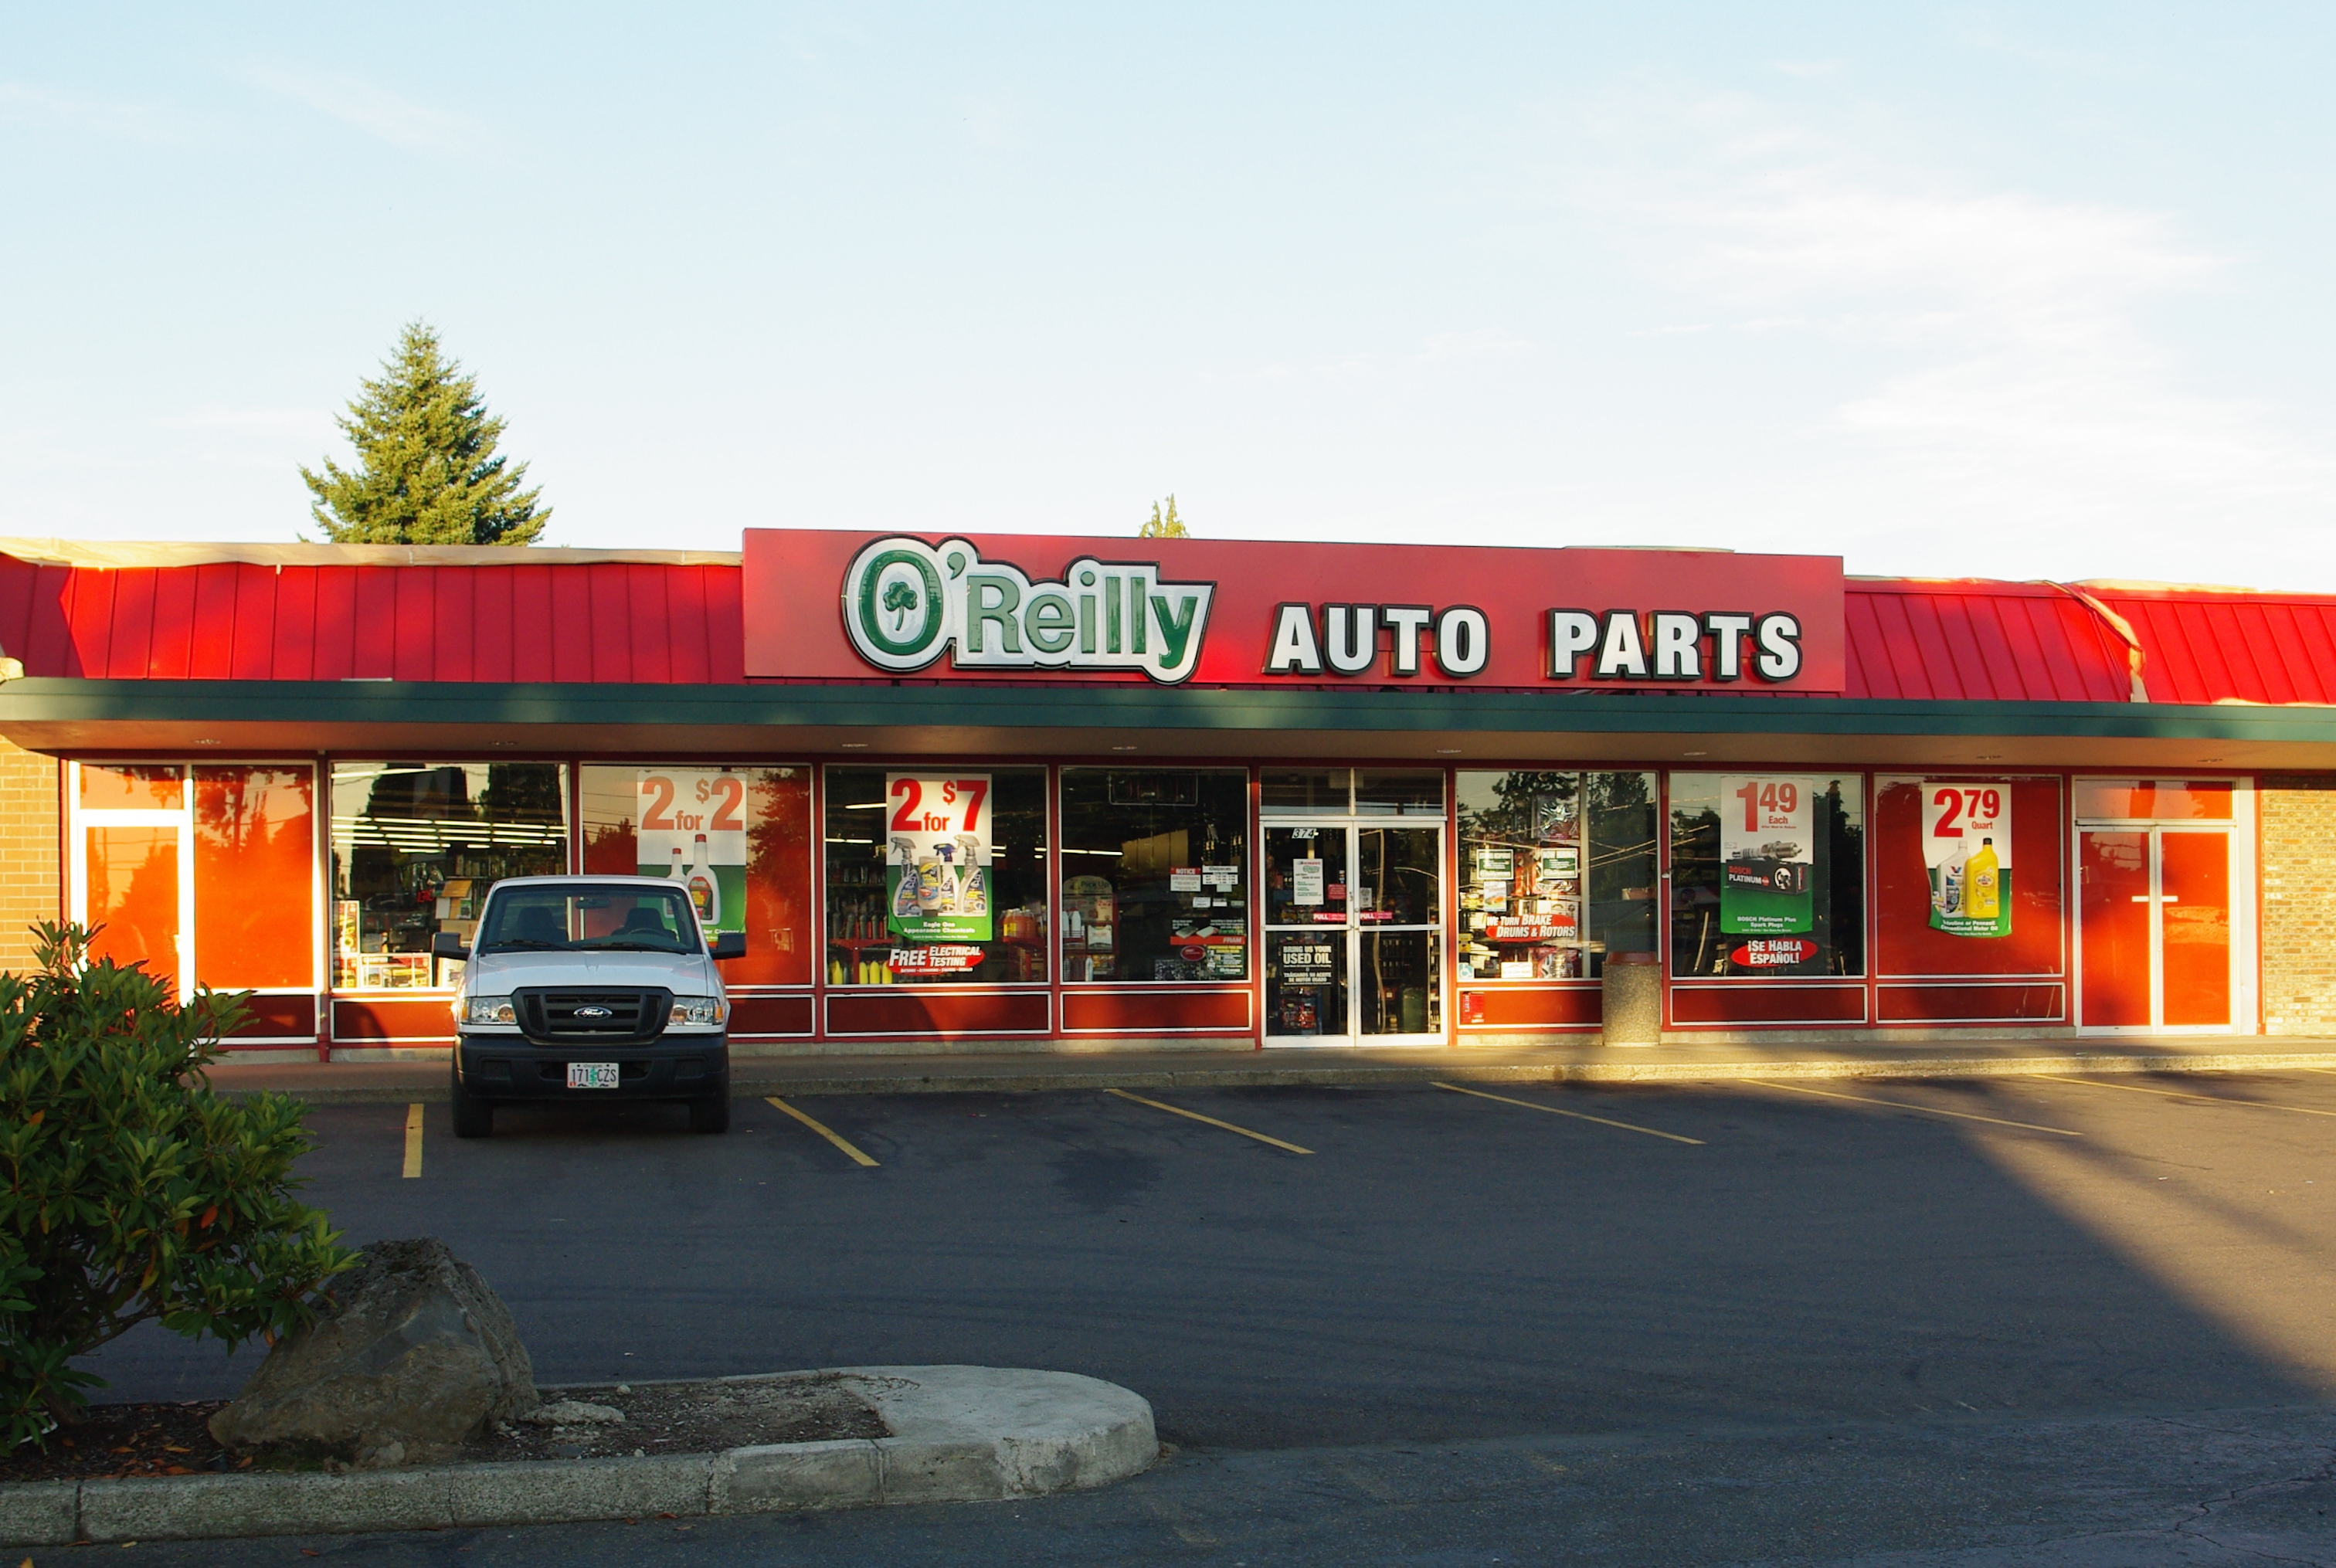 Dec 01,  · This is the BEST O'Reilly Auto Parts (or any Auto parts store) I've been to on this island. Kenna the assistant manager went above and beyond and was so incredibly helpful with my car needs. Everyone was friendly and smiling and the service was fast and efficient.4/4(34).